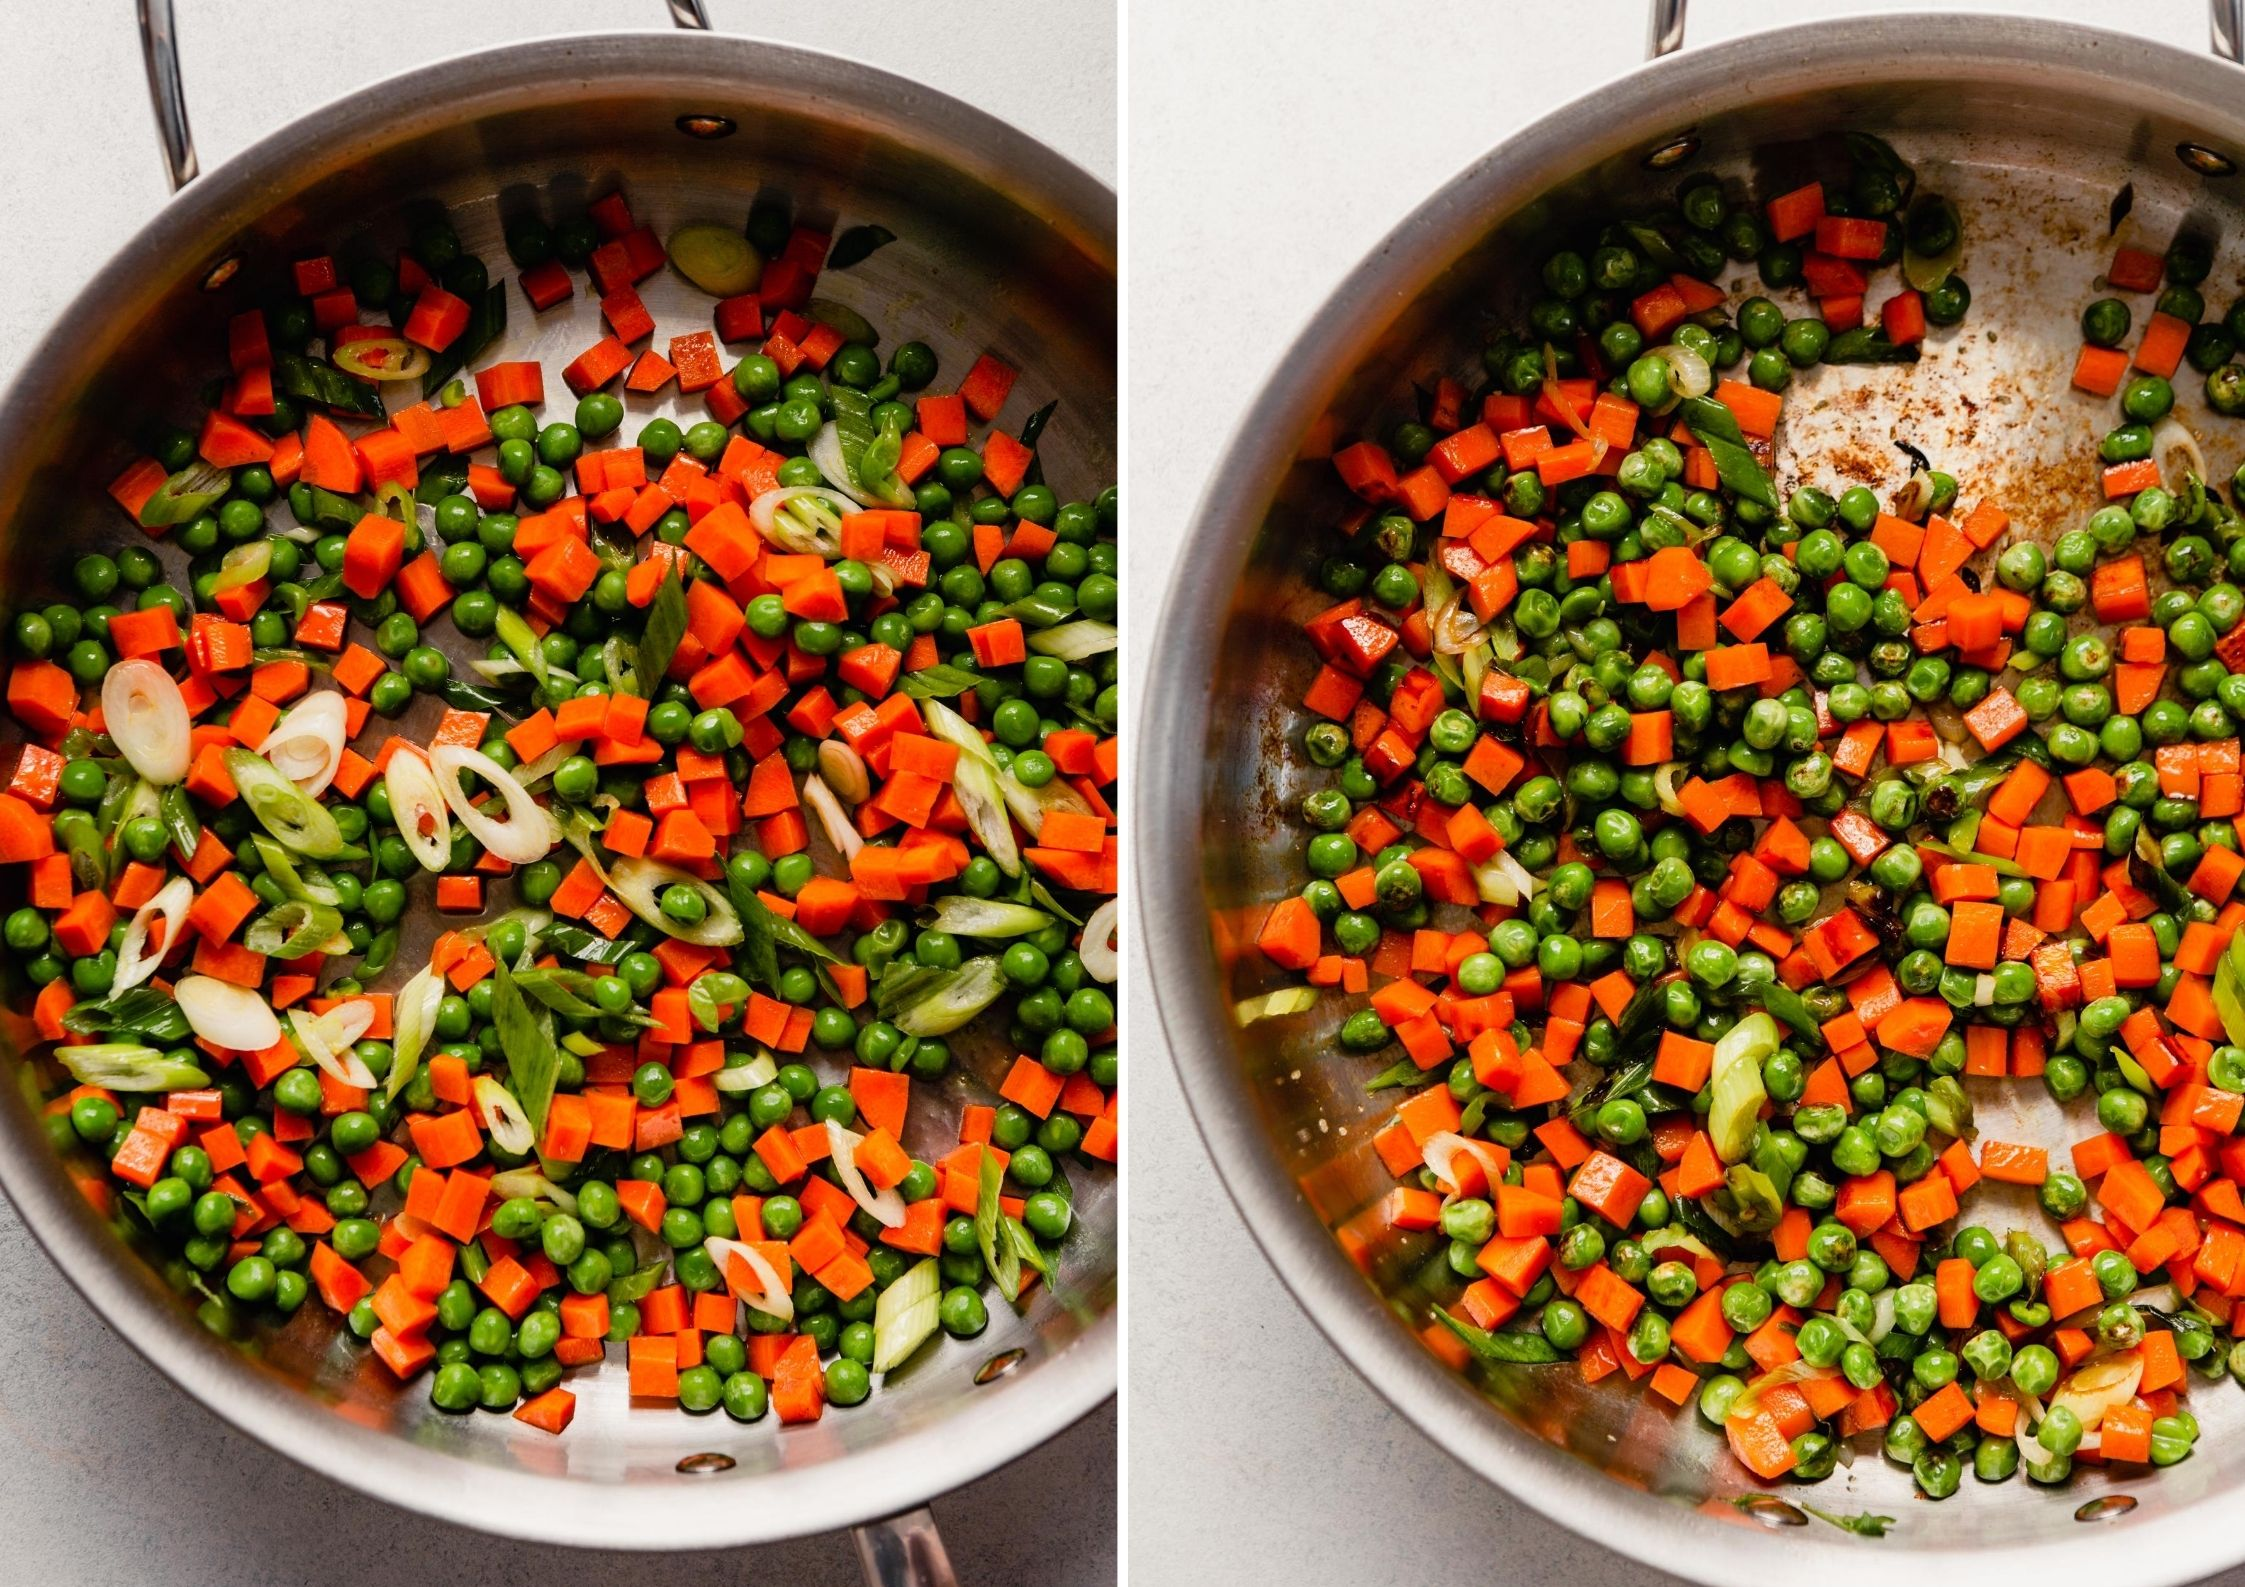 grid of images showing upcooked veggies in a pan and cooked veggies in a pan